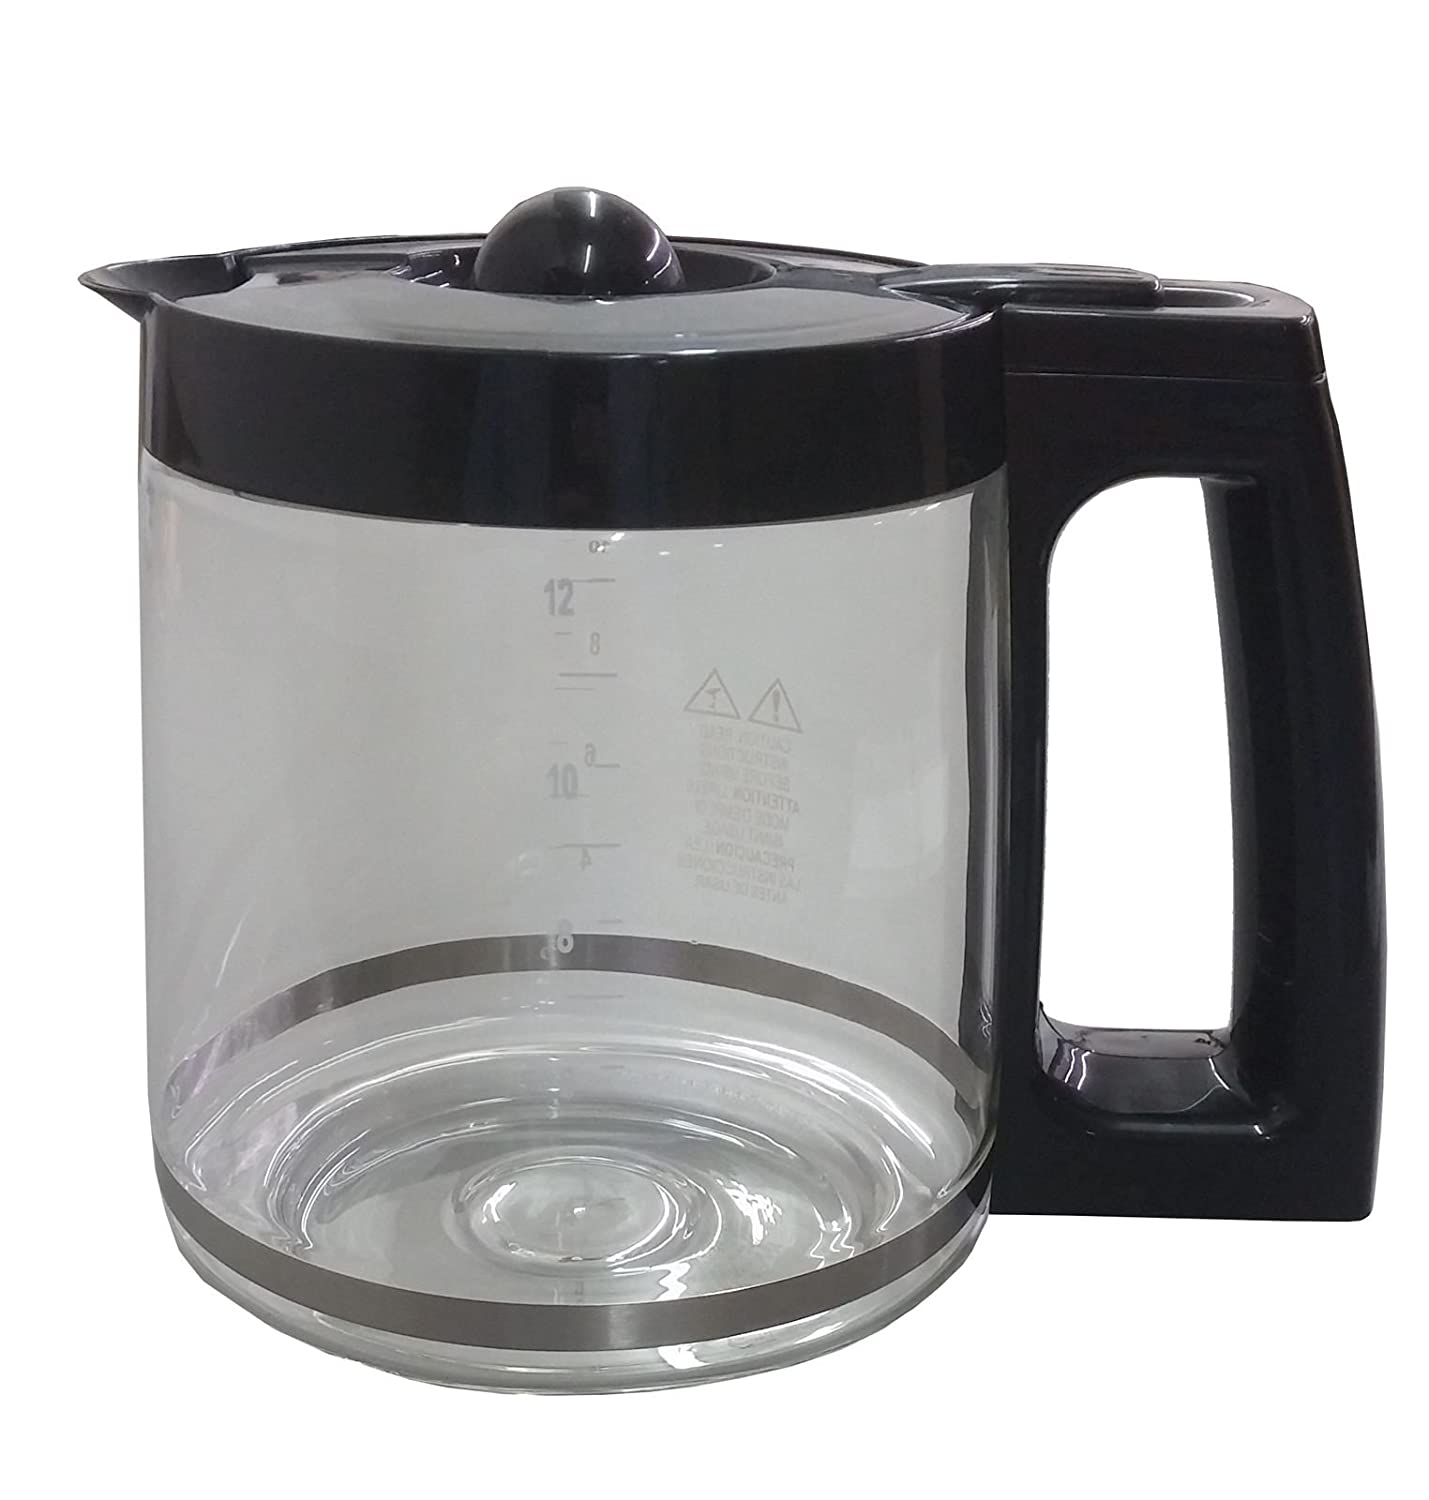 YourStoreFront 12-Cup Replacement Glass Coffee Carafe Pot for Hamilton Beach Coffee Maker 49980Z